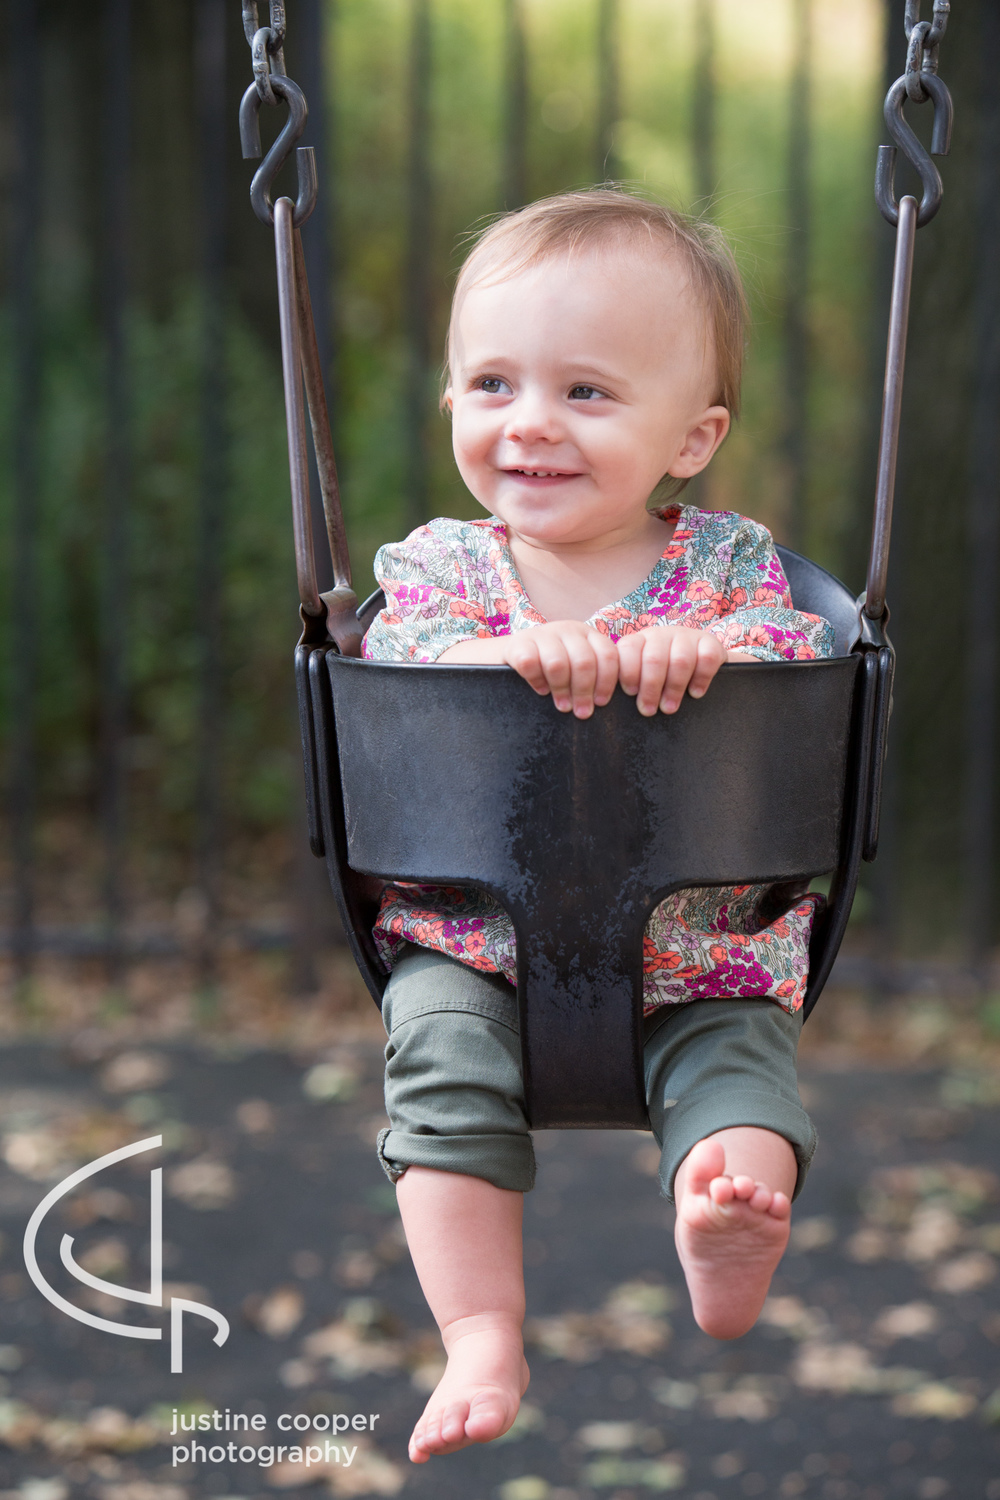 Swing photos are awesome